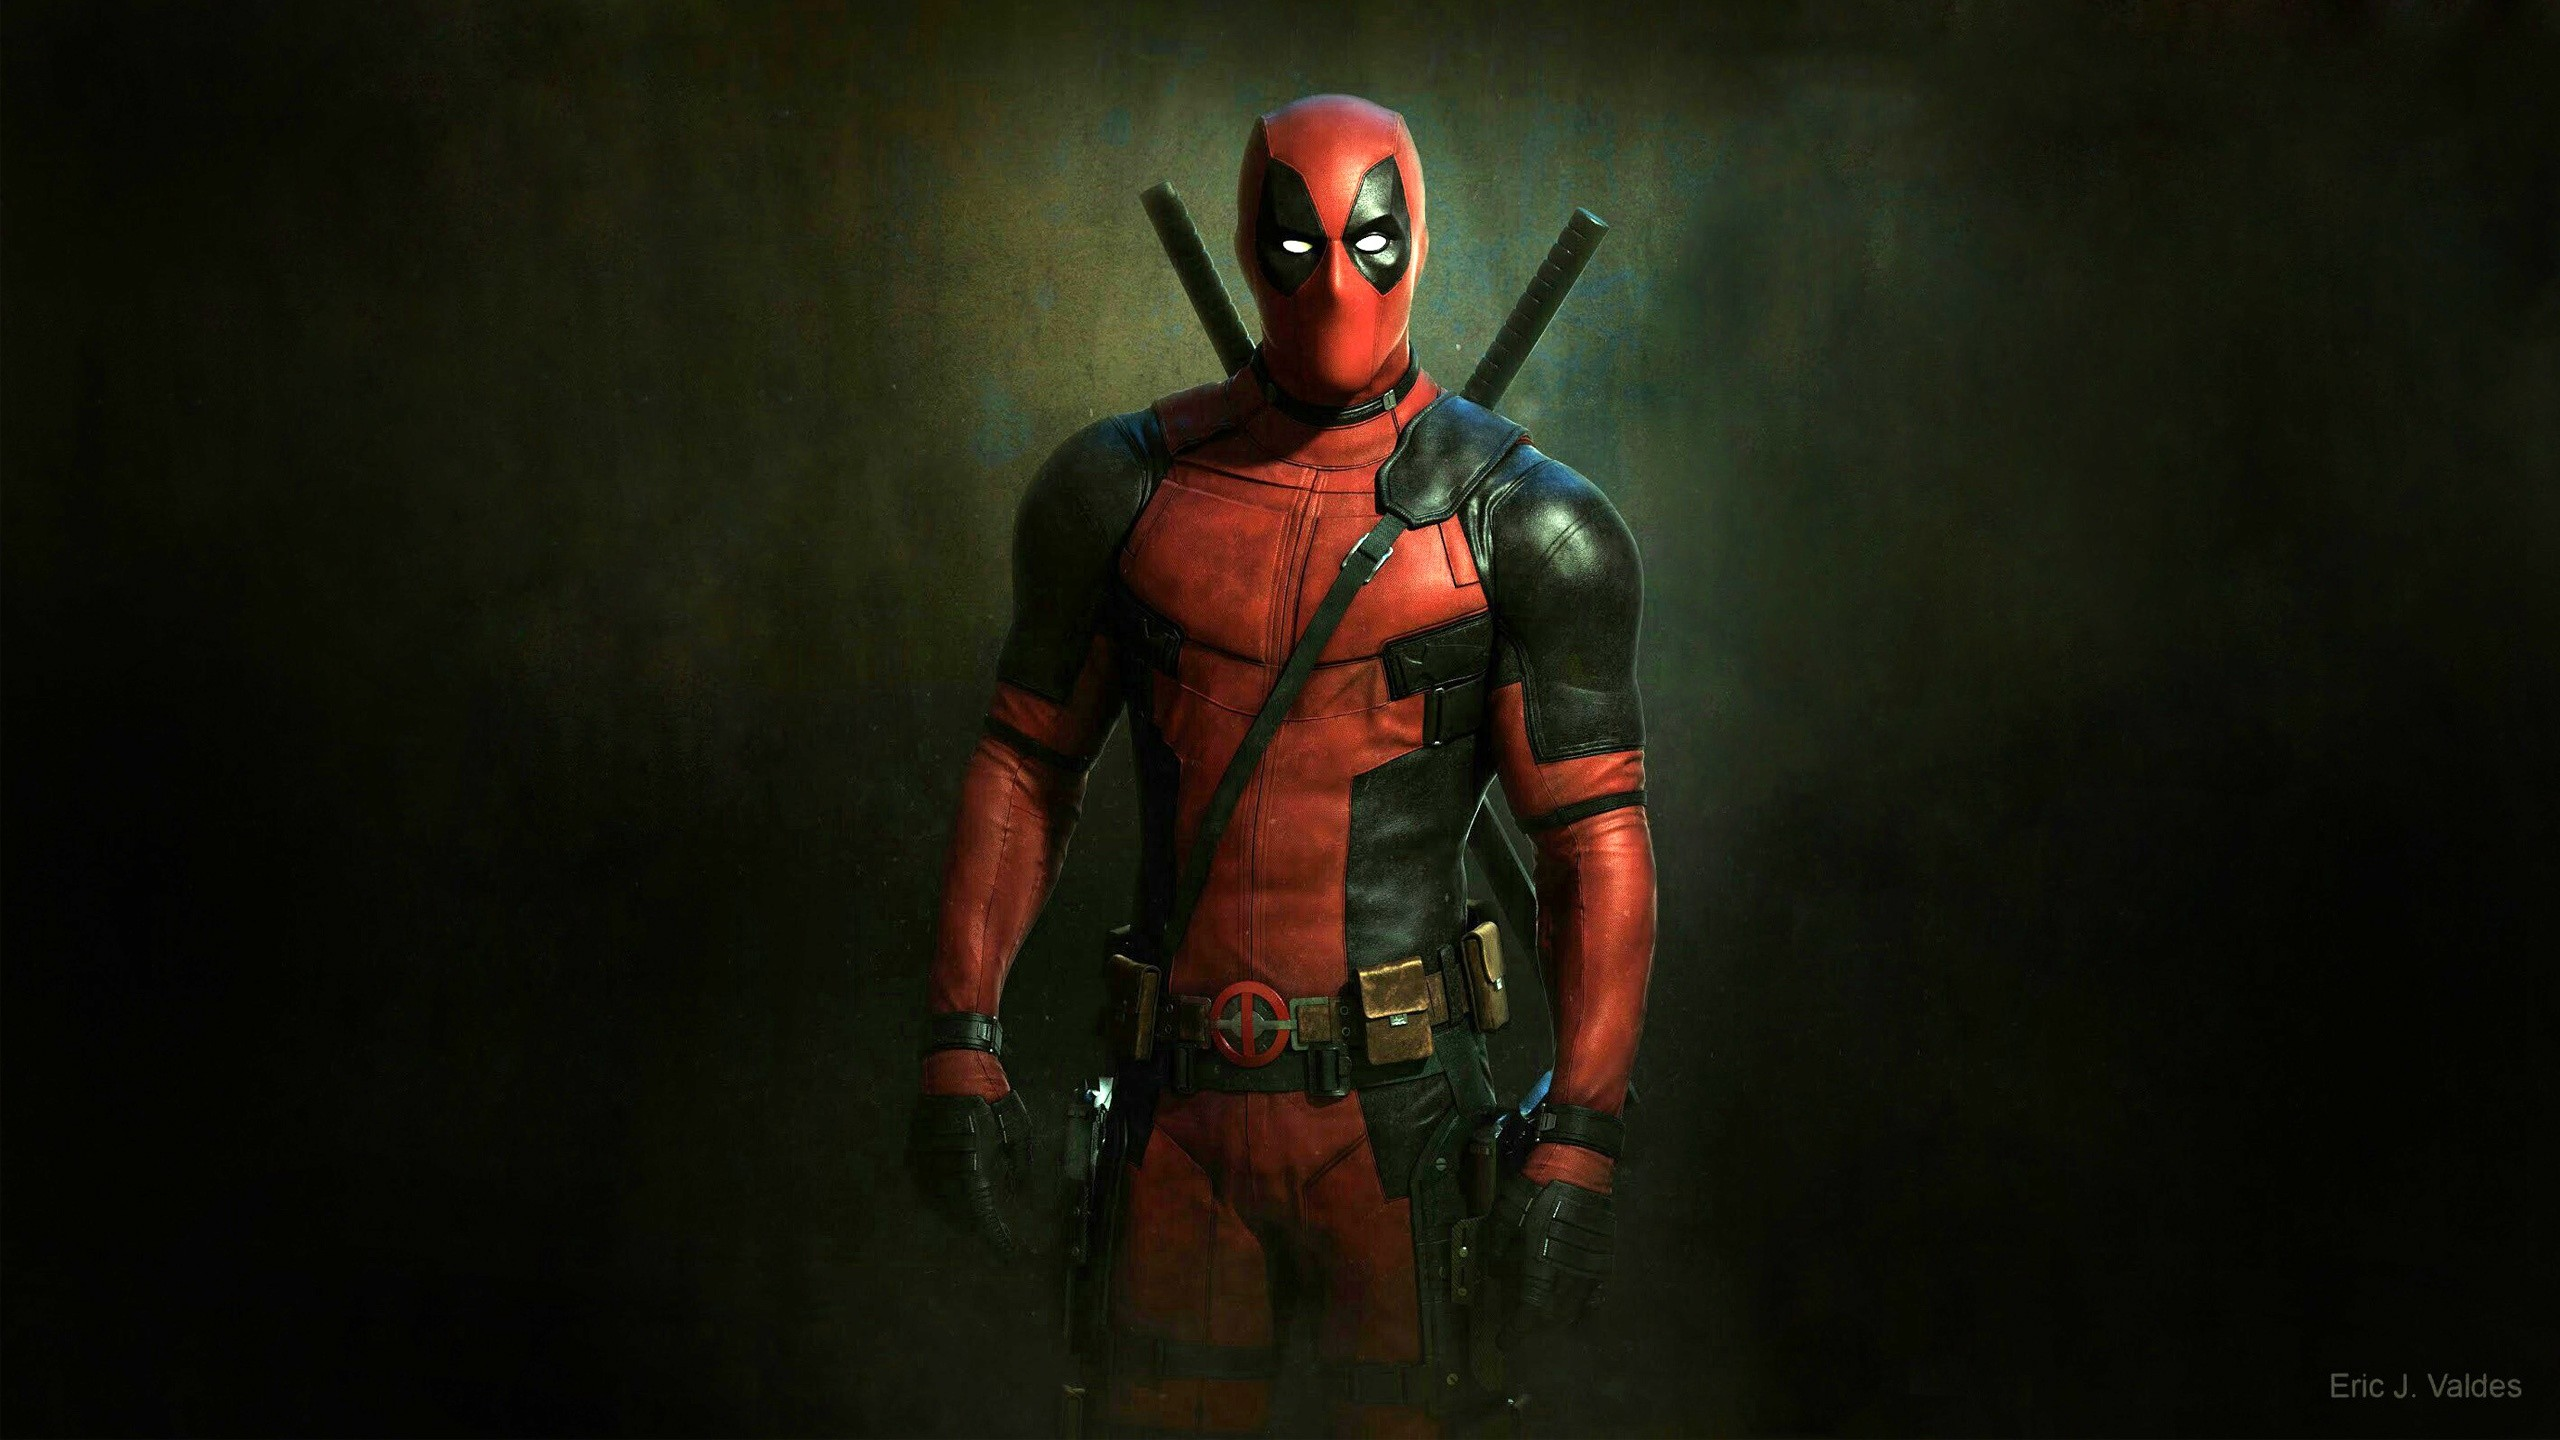 2560x1440 Comics - Deadpool Wallpaper